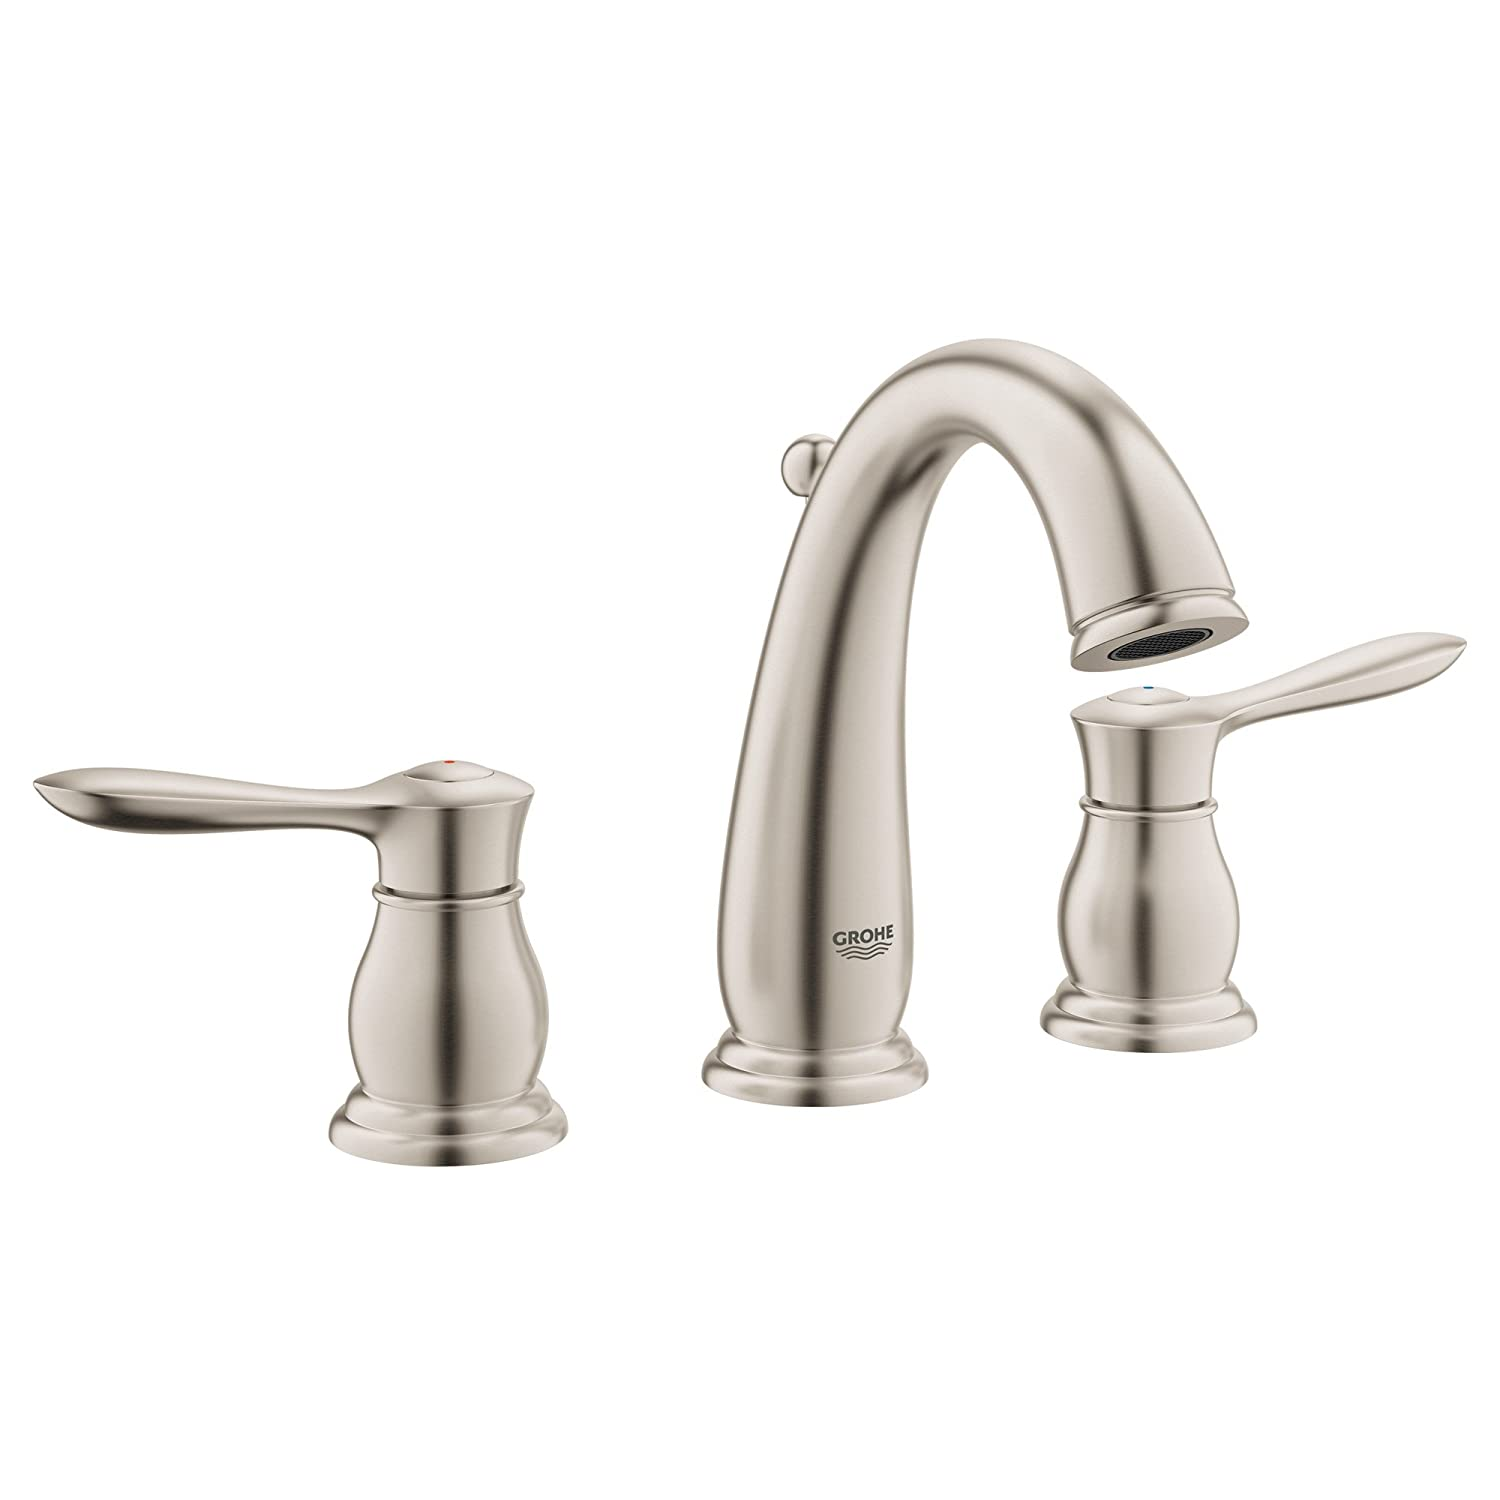 Amazon.com: Parkfield 8 in. Widespread 2-Handle Bathroom Faucet ...